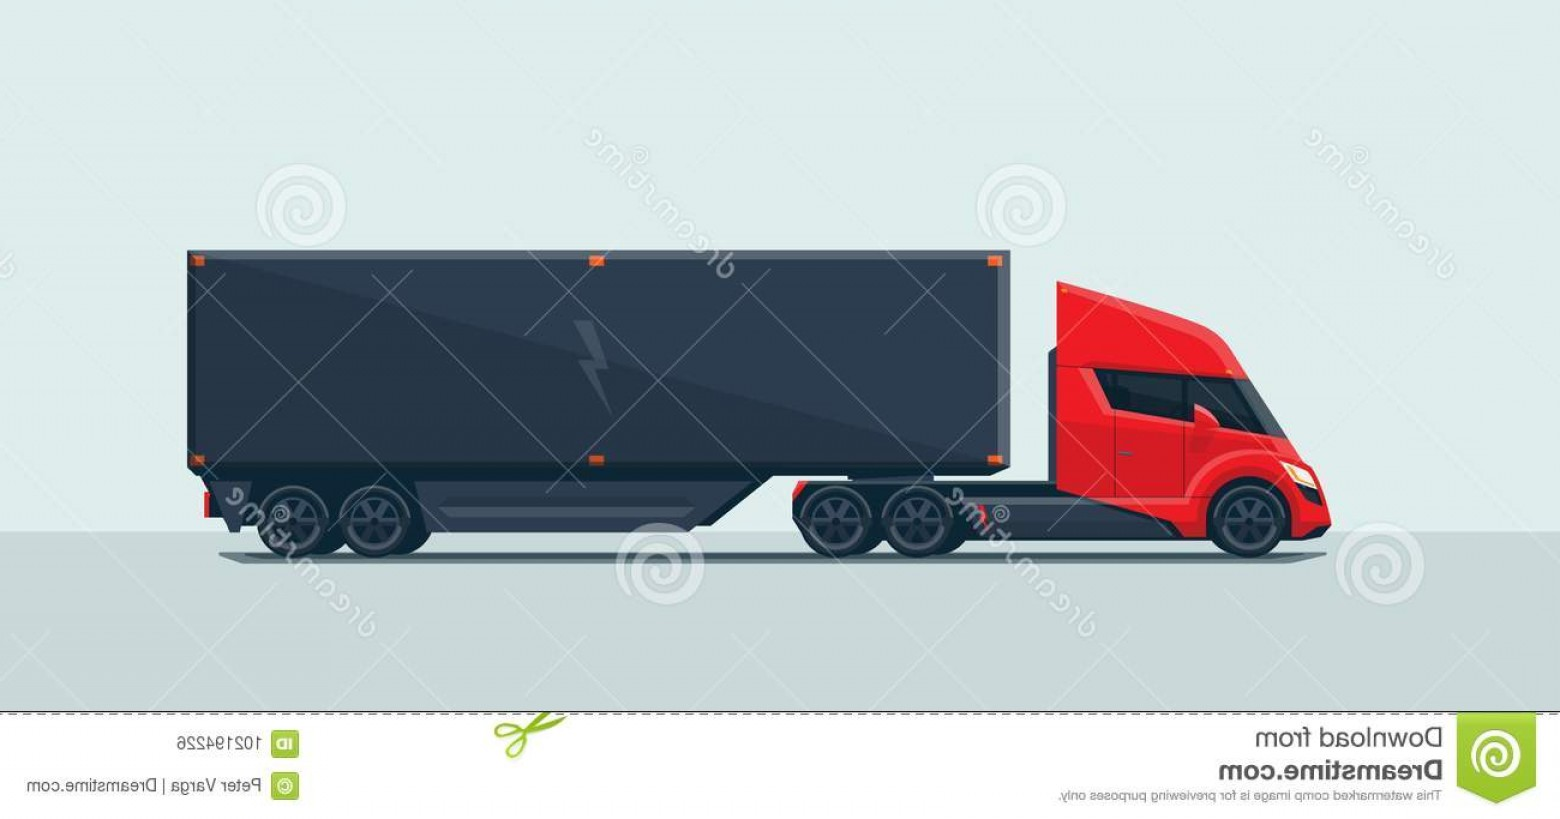 Vector Truck And Trailer Hauling: Flat Vector Illustration Abstract Futuristic Red Electric Semi Trailer Truck Trailer Modern Design Sleeper Image